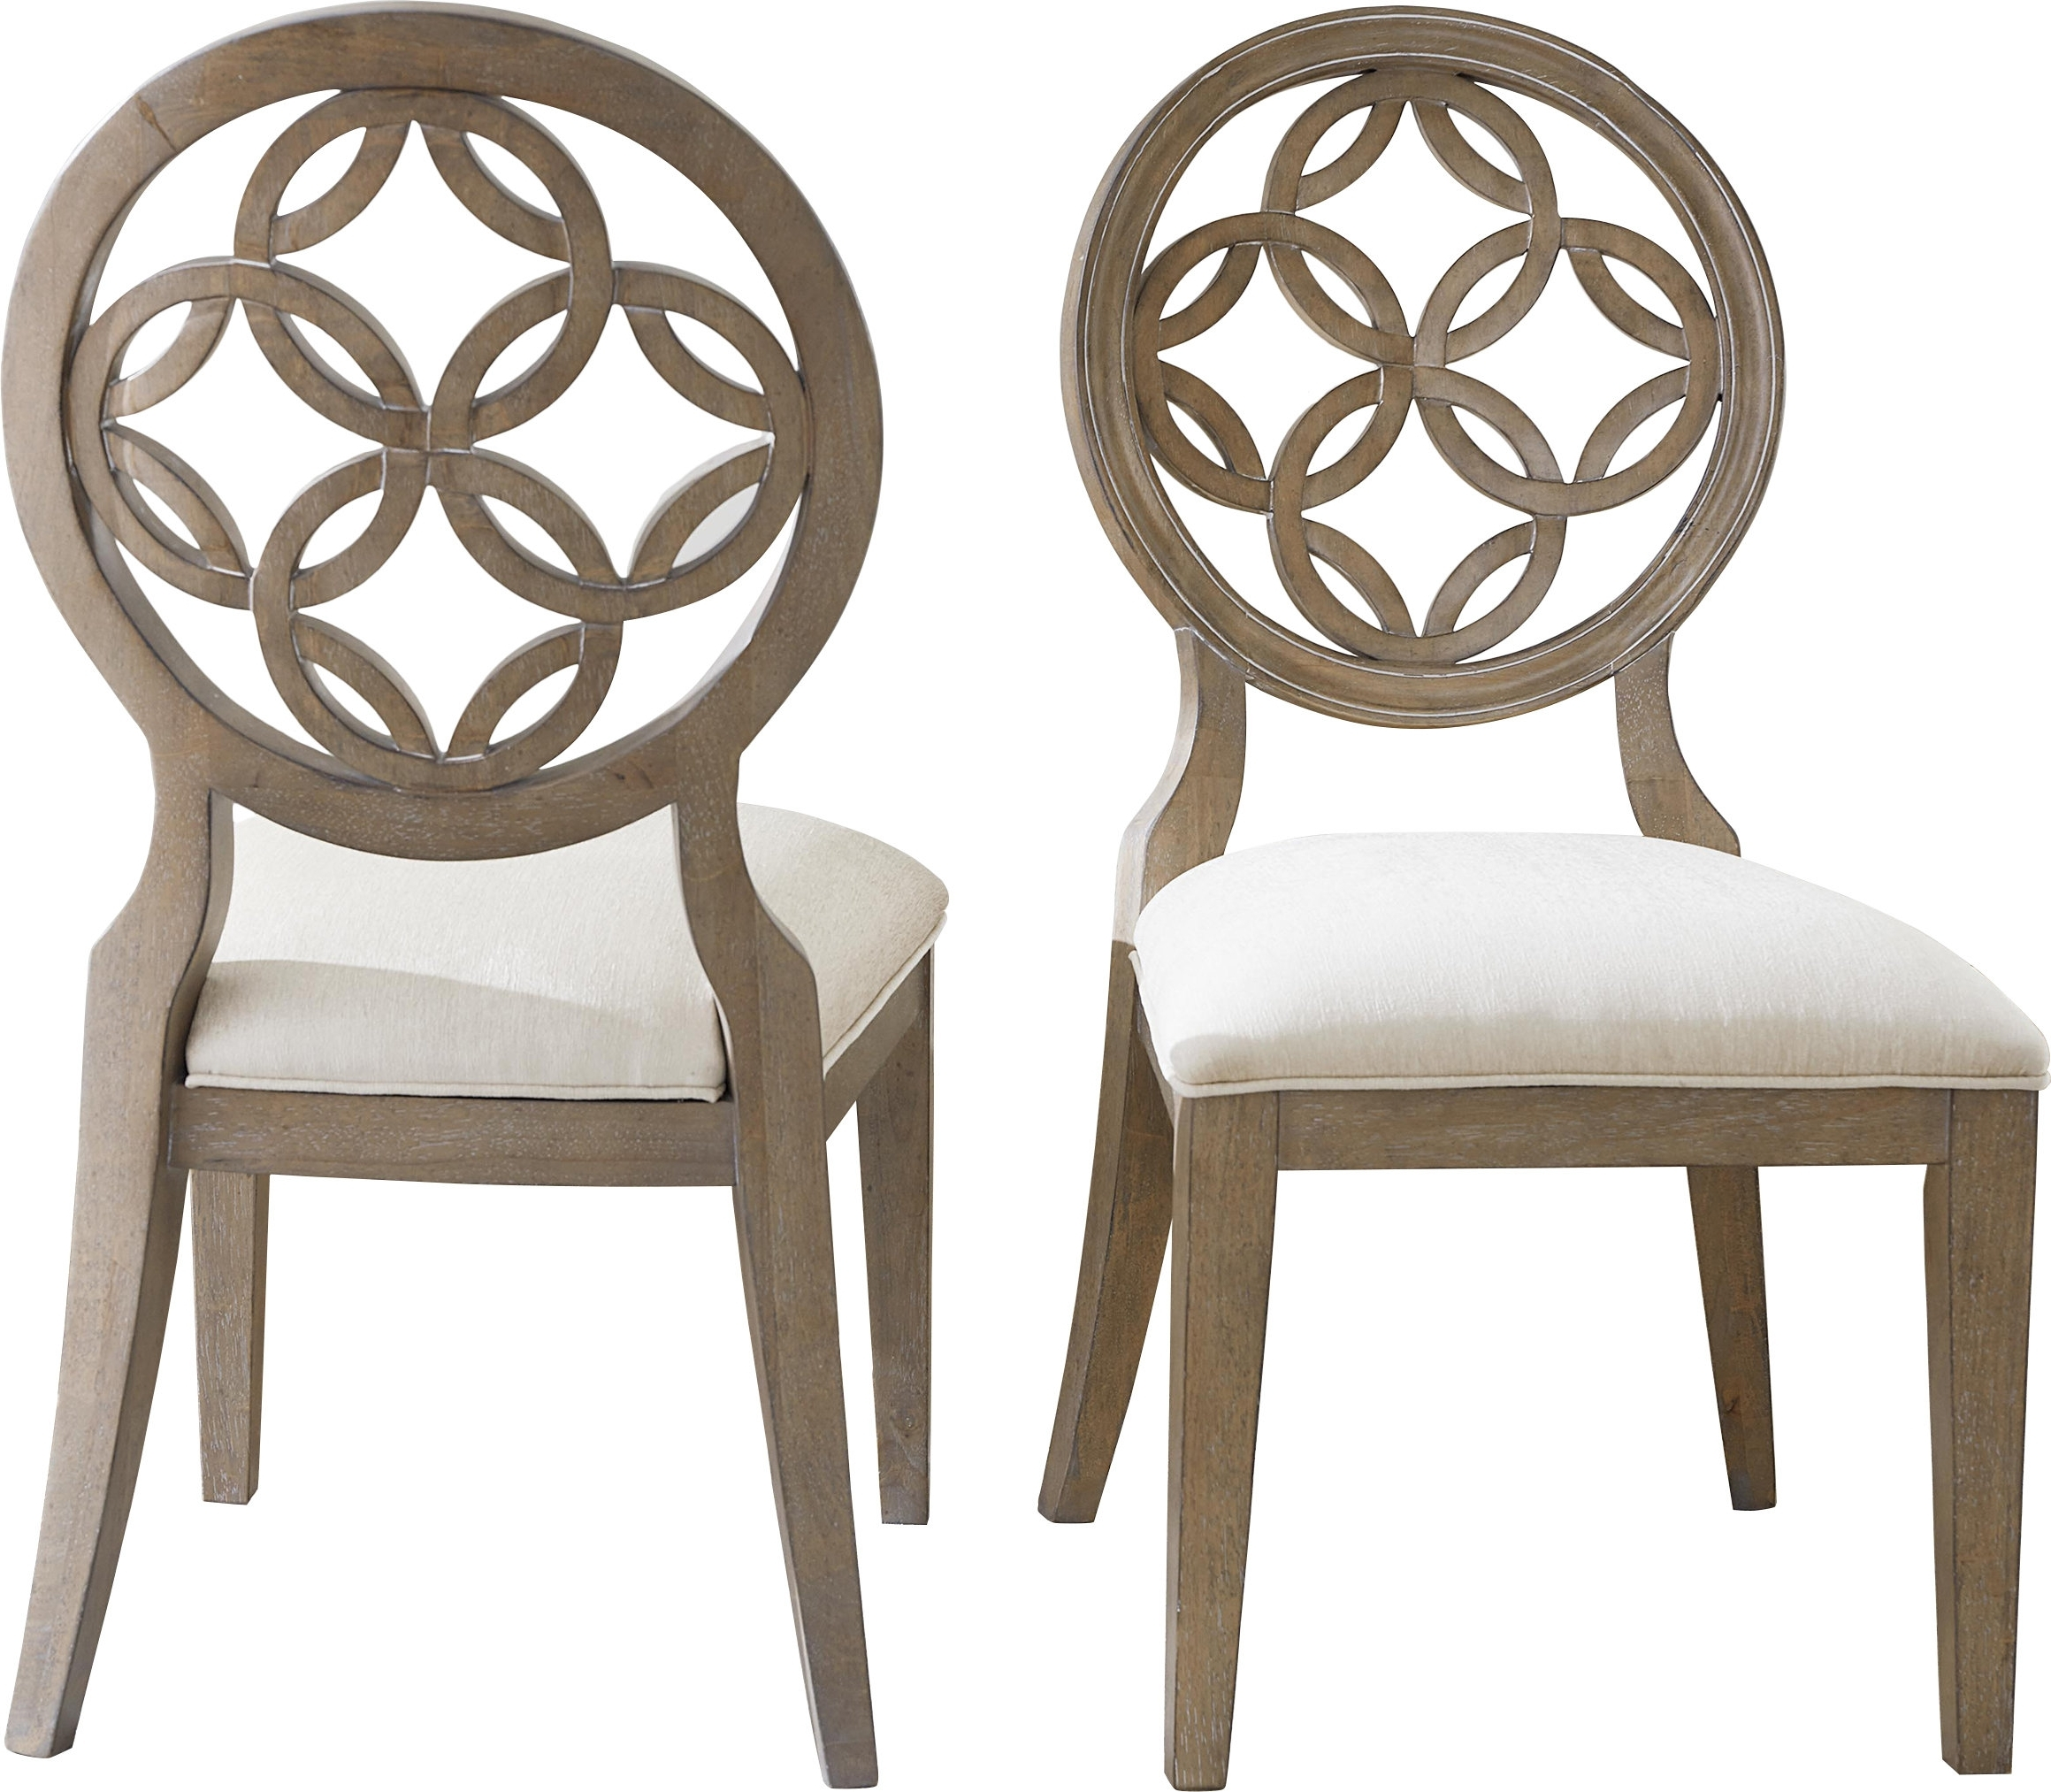 Wayfair Intended For Current Helms Side Chairs (View 19 of 20)